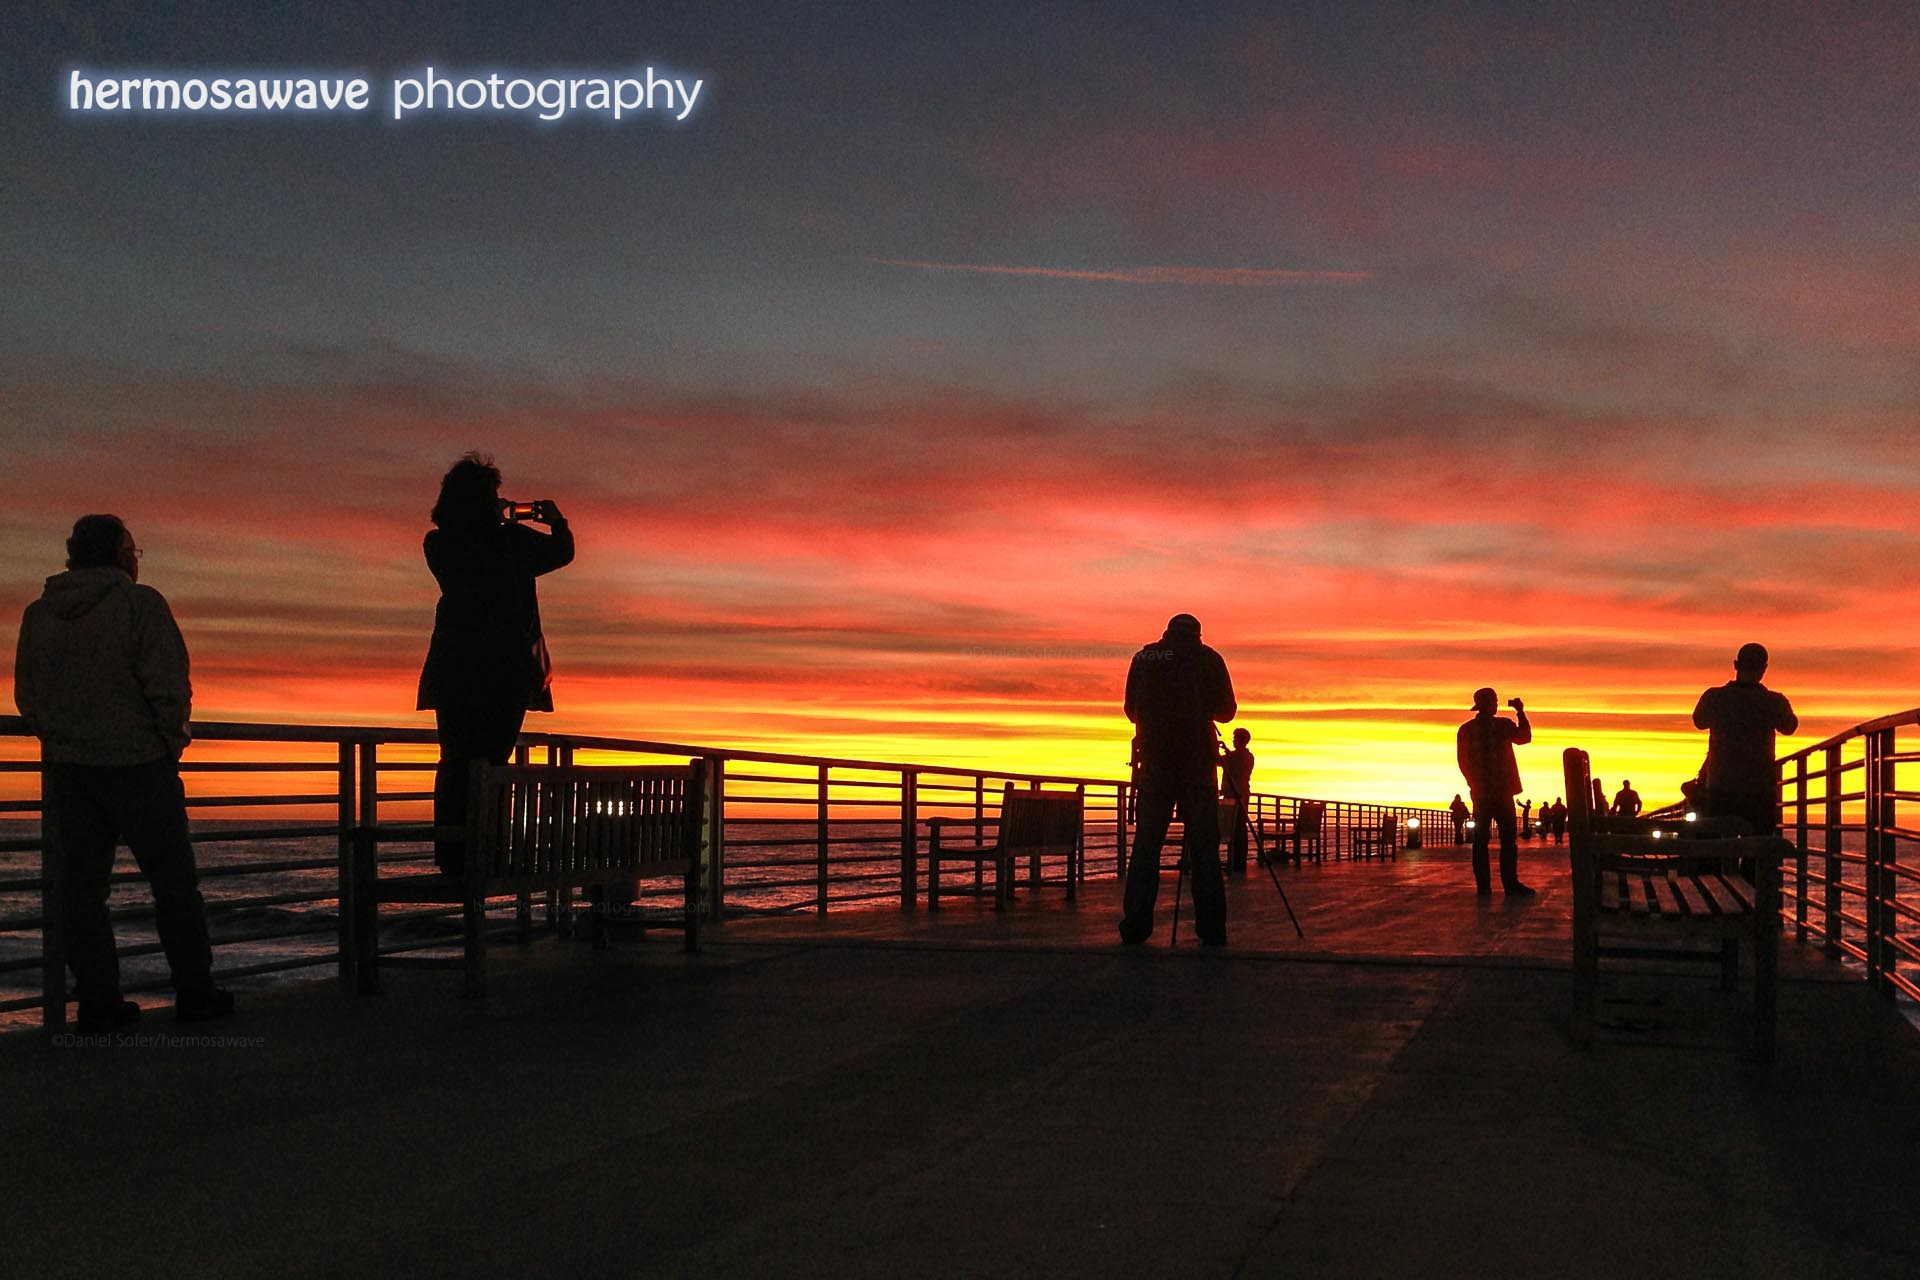 Photographers at the Pier